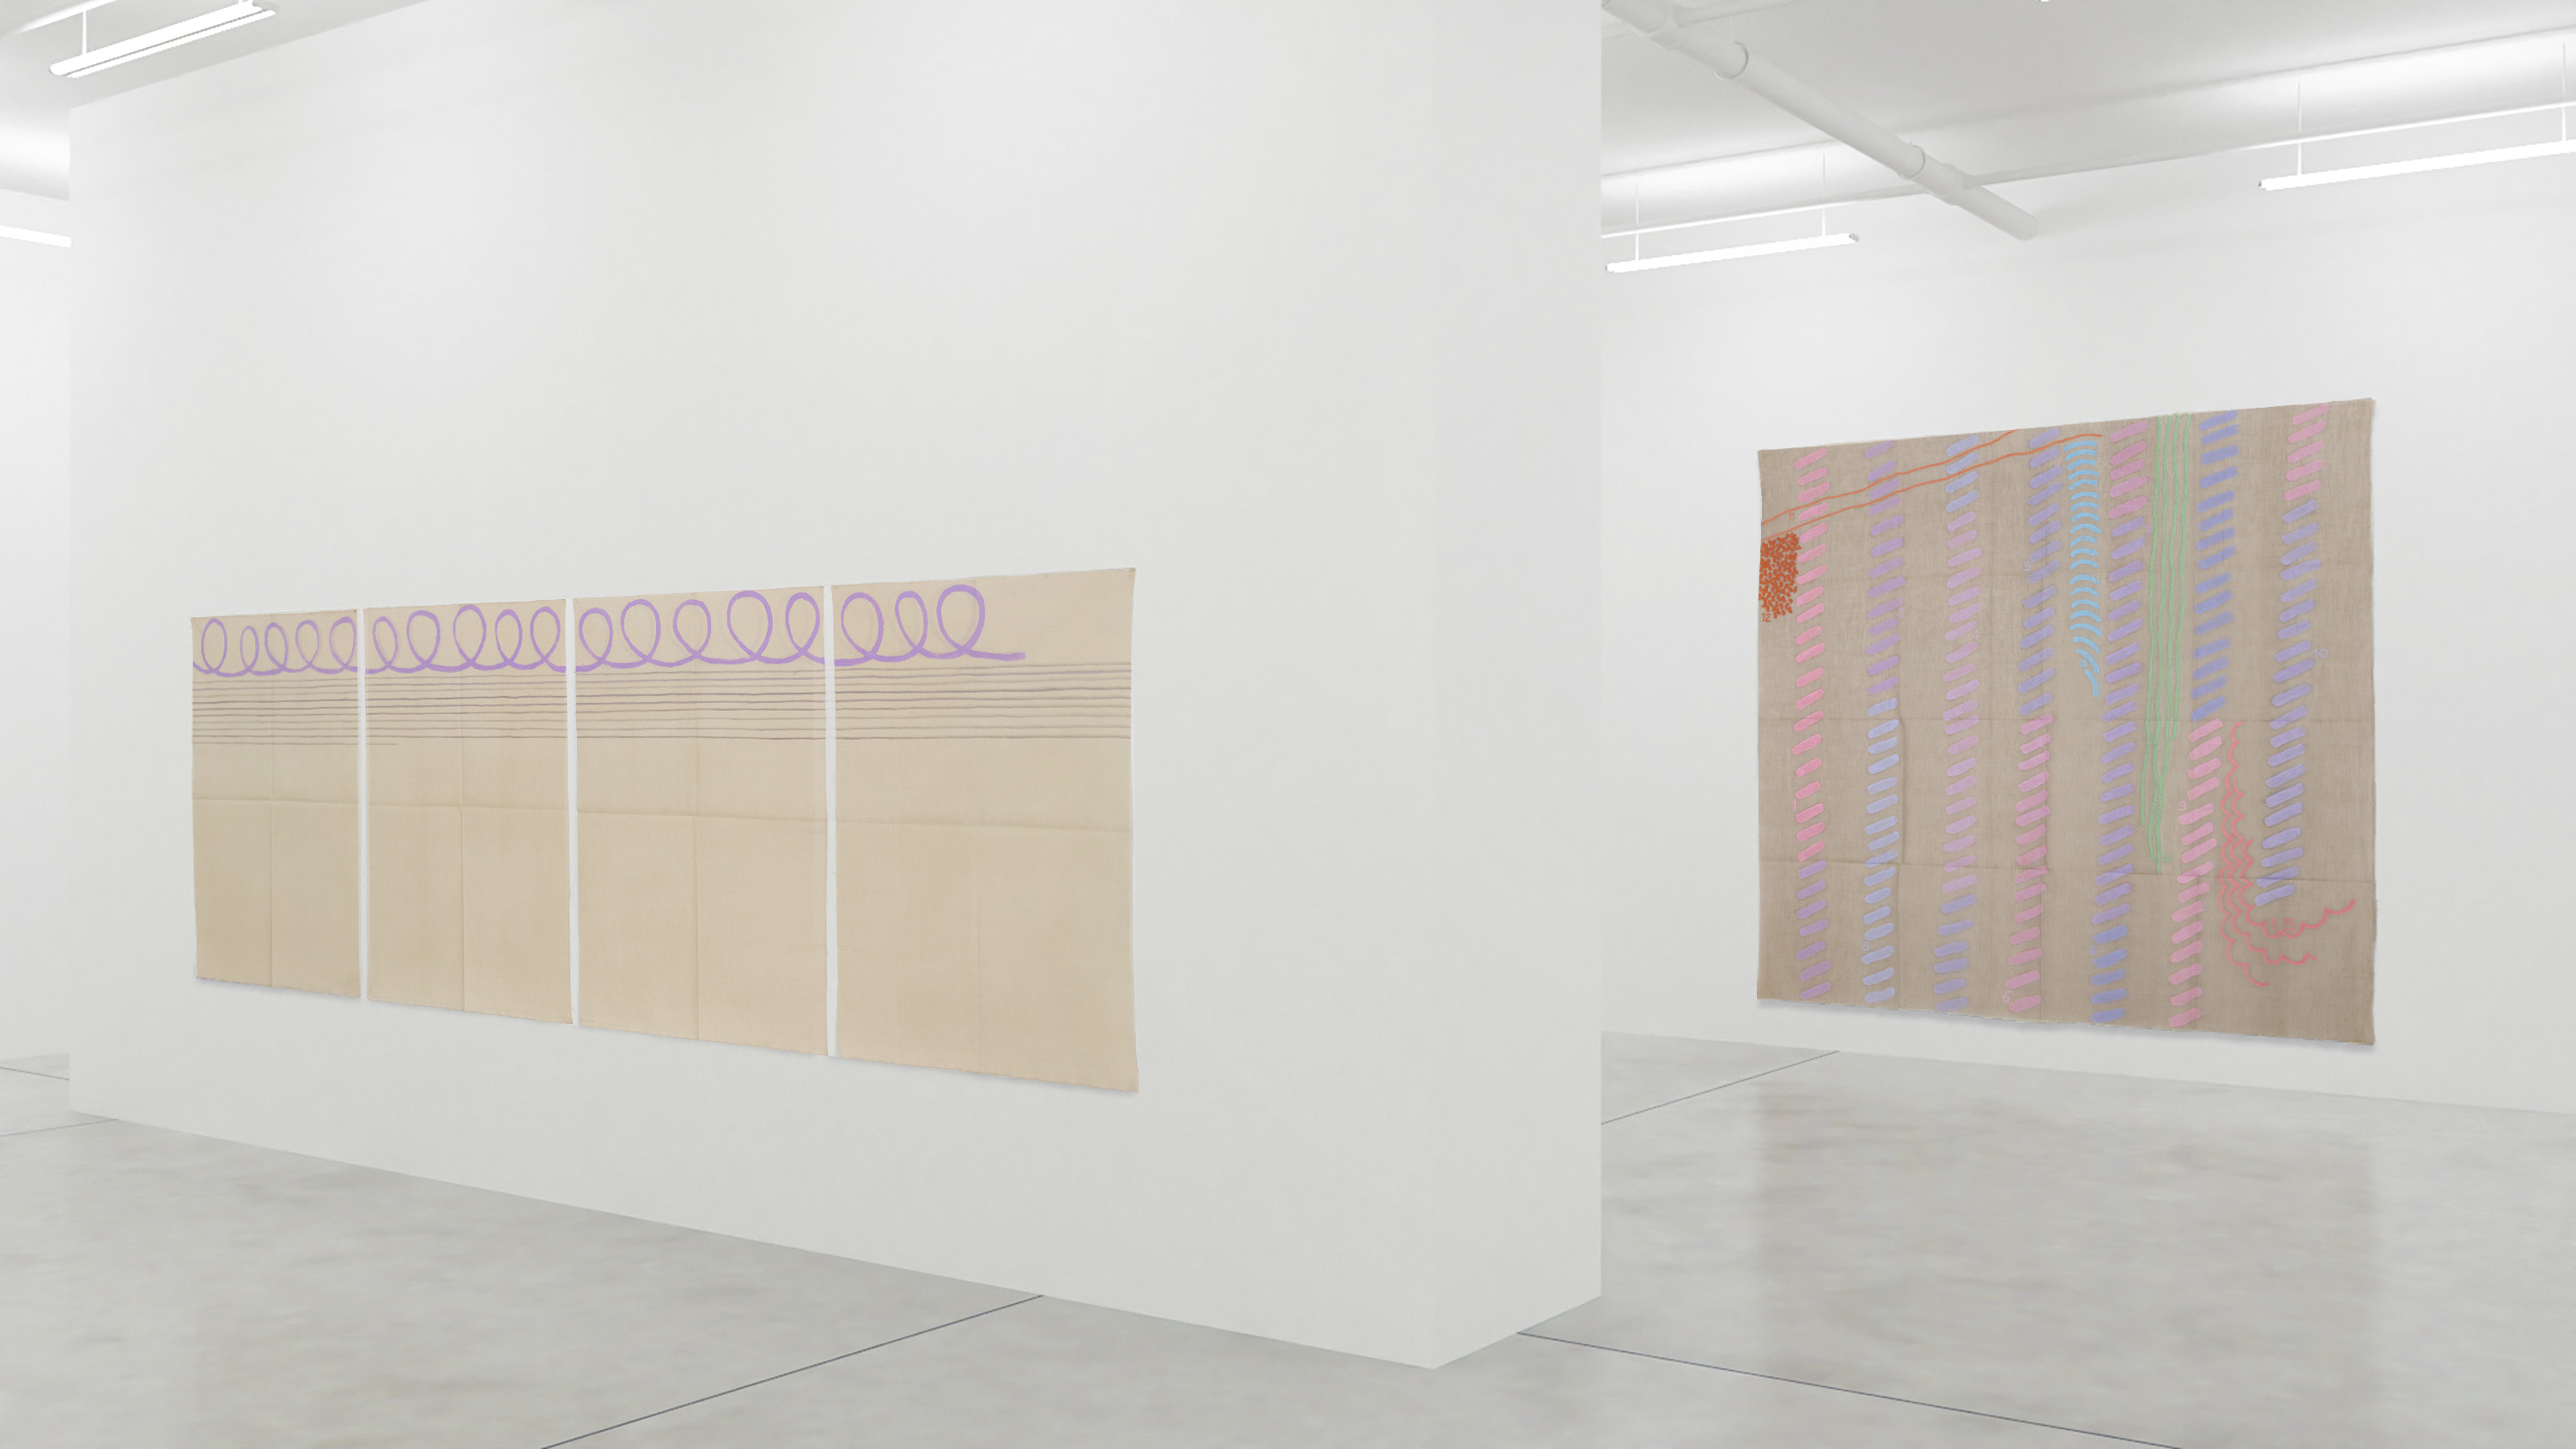 Giorgio Griffa, The 1990's, Installation view 2, courtesy of the artist and Casey Kaplan, New York.